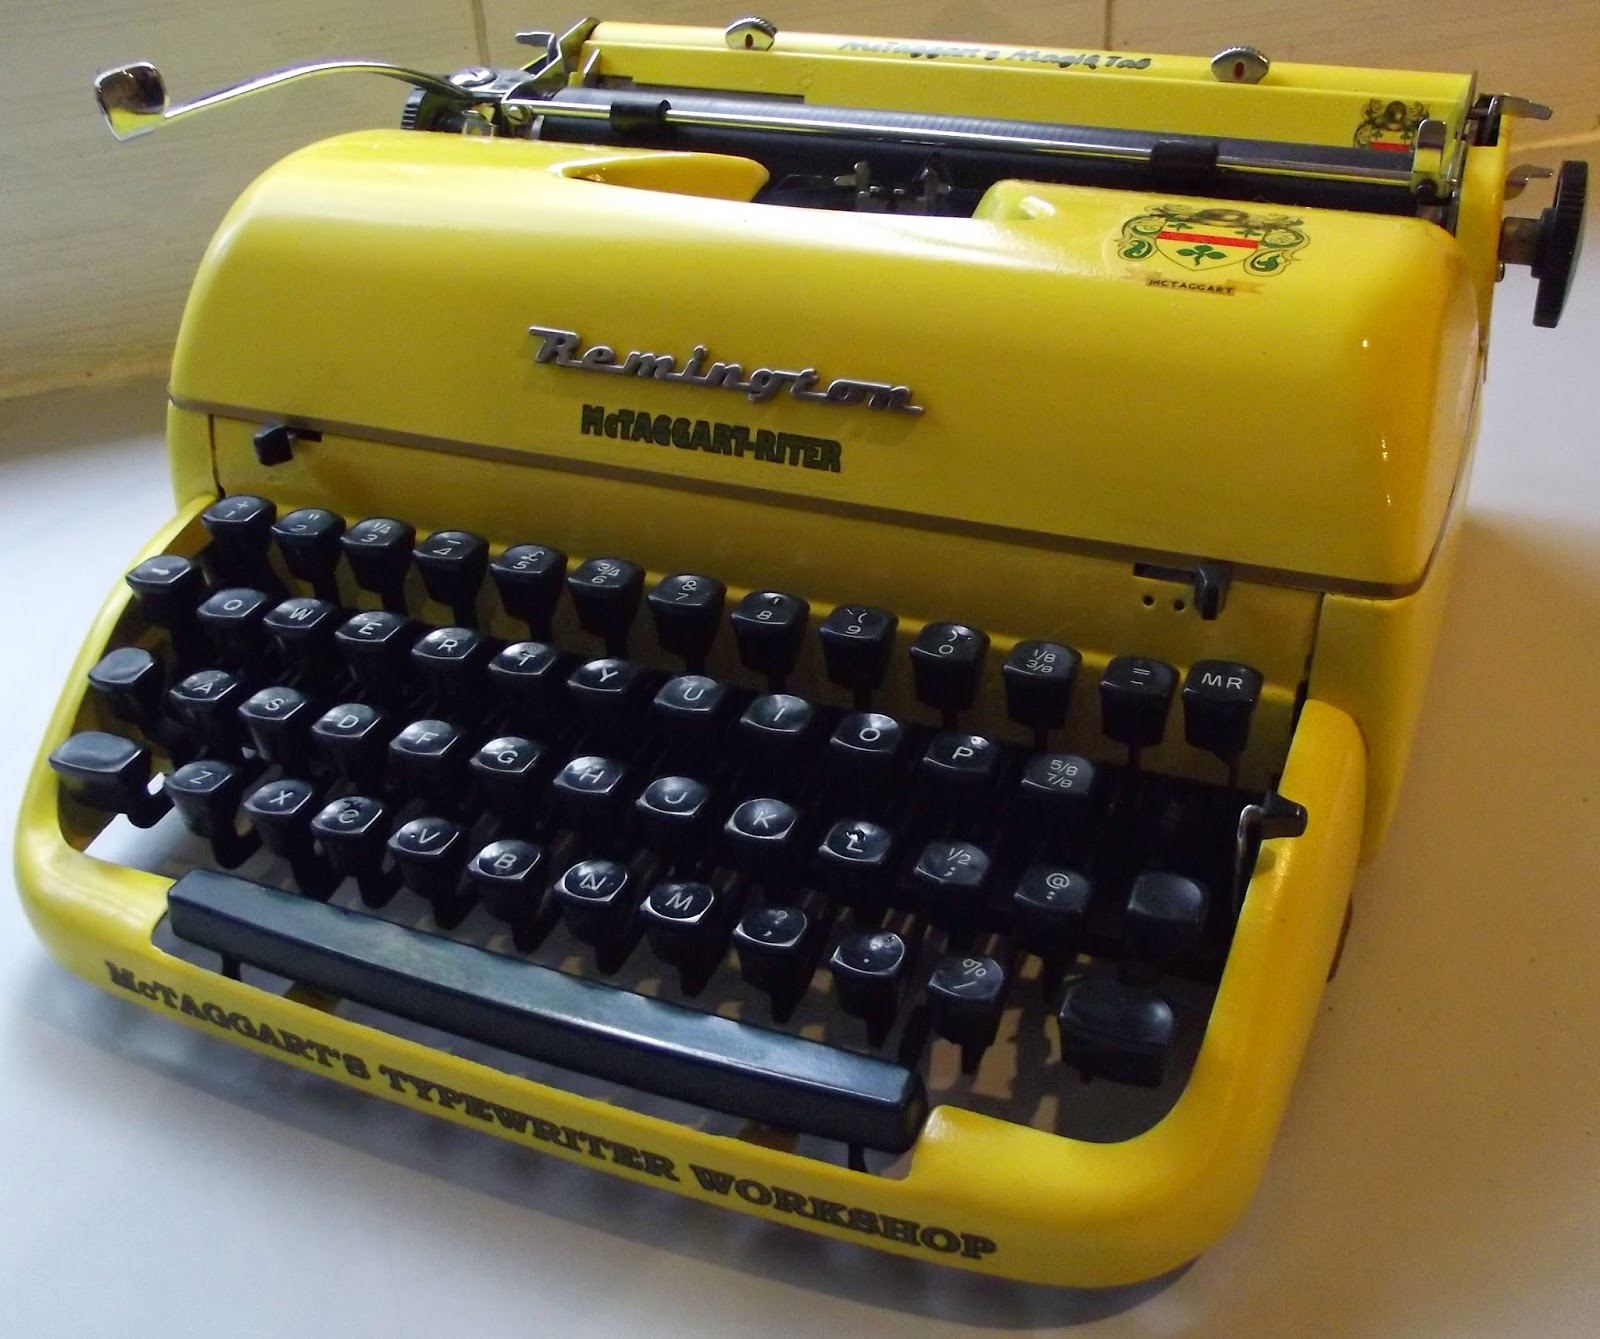 A McTaggart-Riter 003